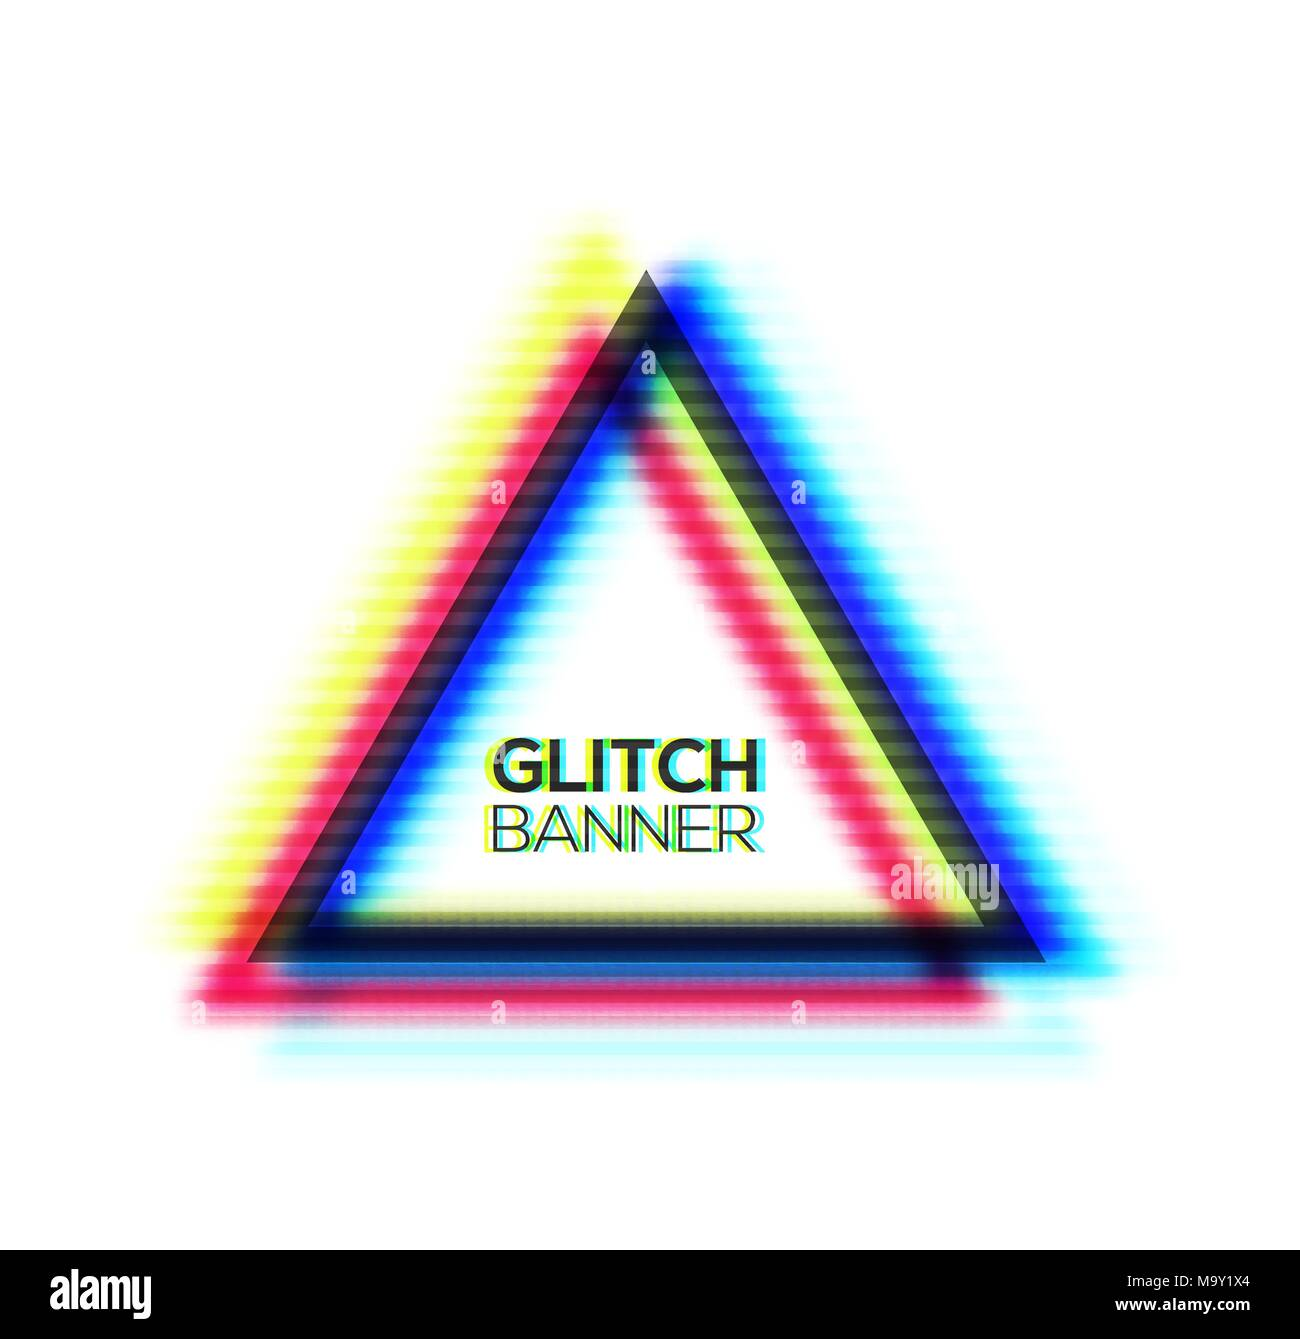 Minimal style art. Glitch texture triangle frame design. Distorted ...